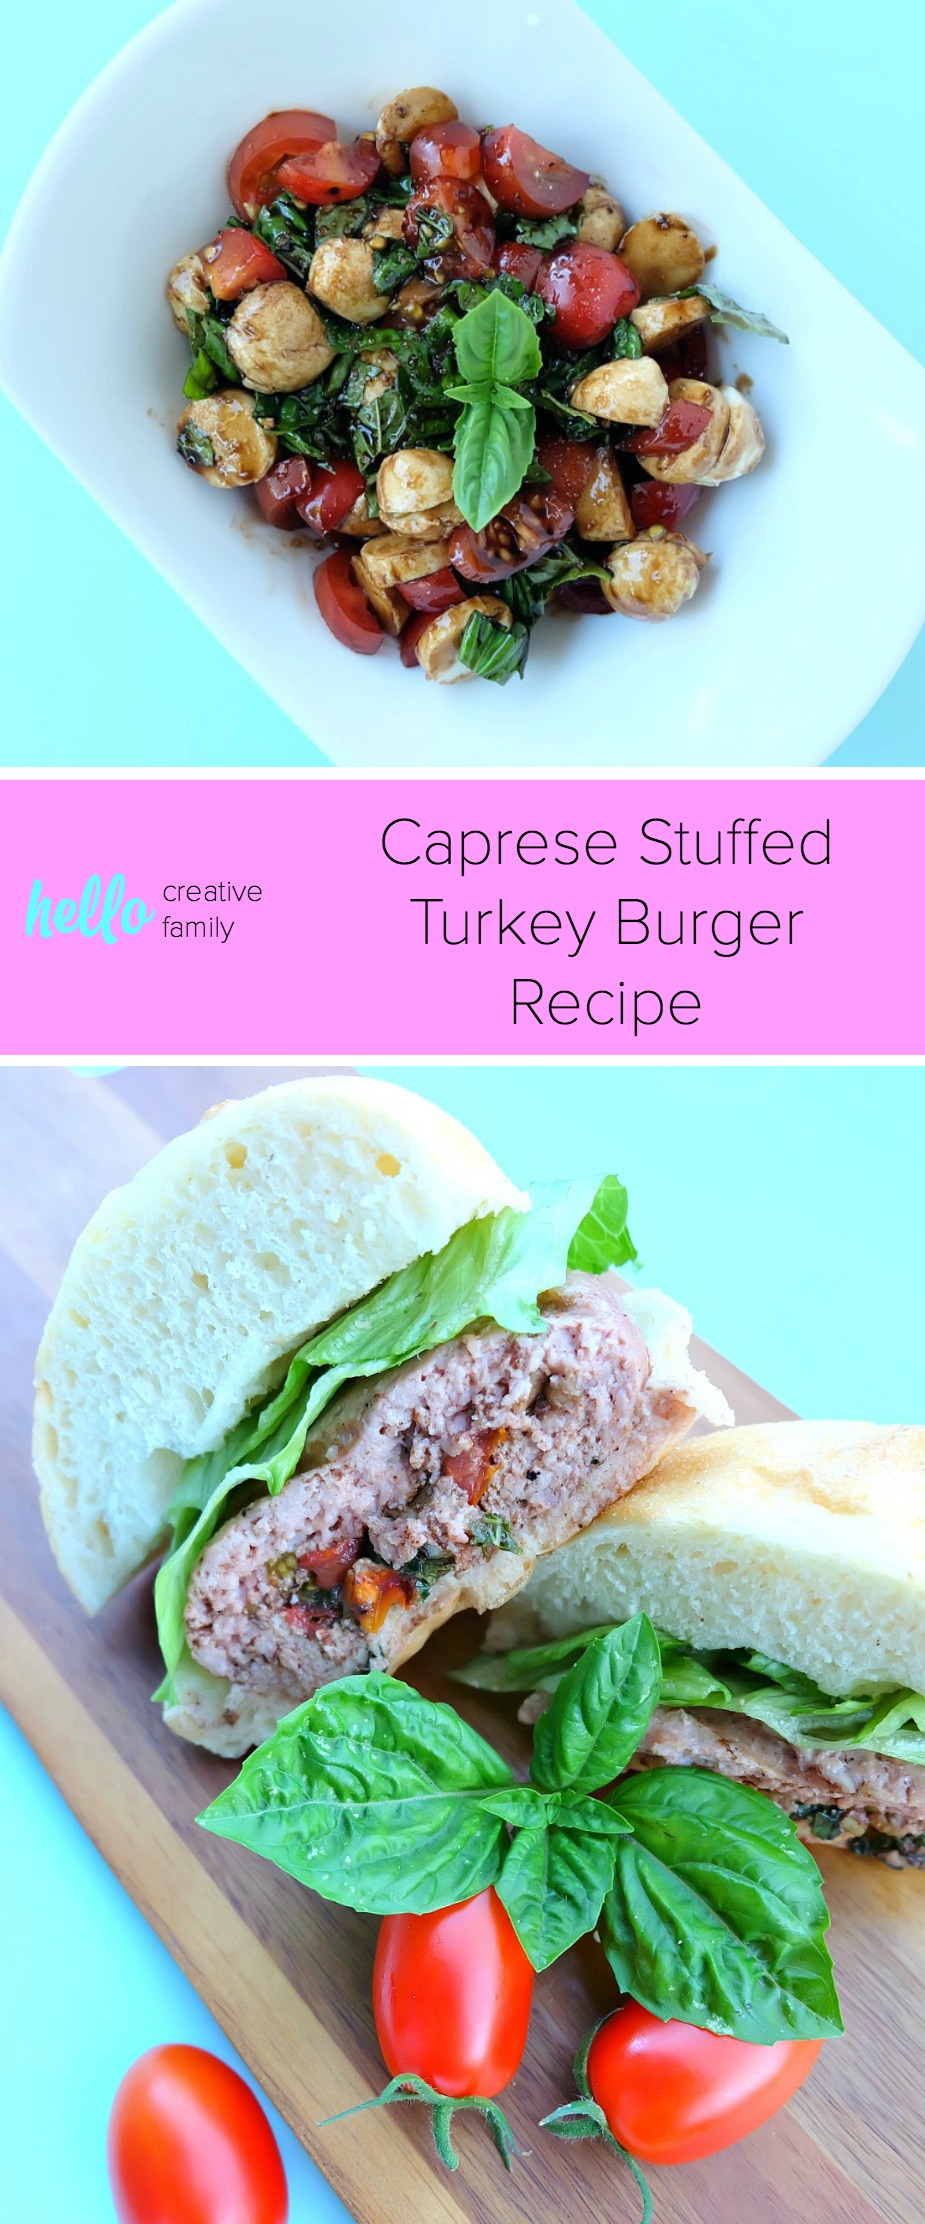 Fire up the BBQ and get out of the hot kitchen! This Caprese Stuffed Turkey Burger Recipe is filled with all of the flavors of summer. Juicy, flavorful and a healthy burger too! You'll feel good about feeding this easy 30 minute meal to your family! #Turkey #Burger #StuffedBurger #Recipe #Sponsored